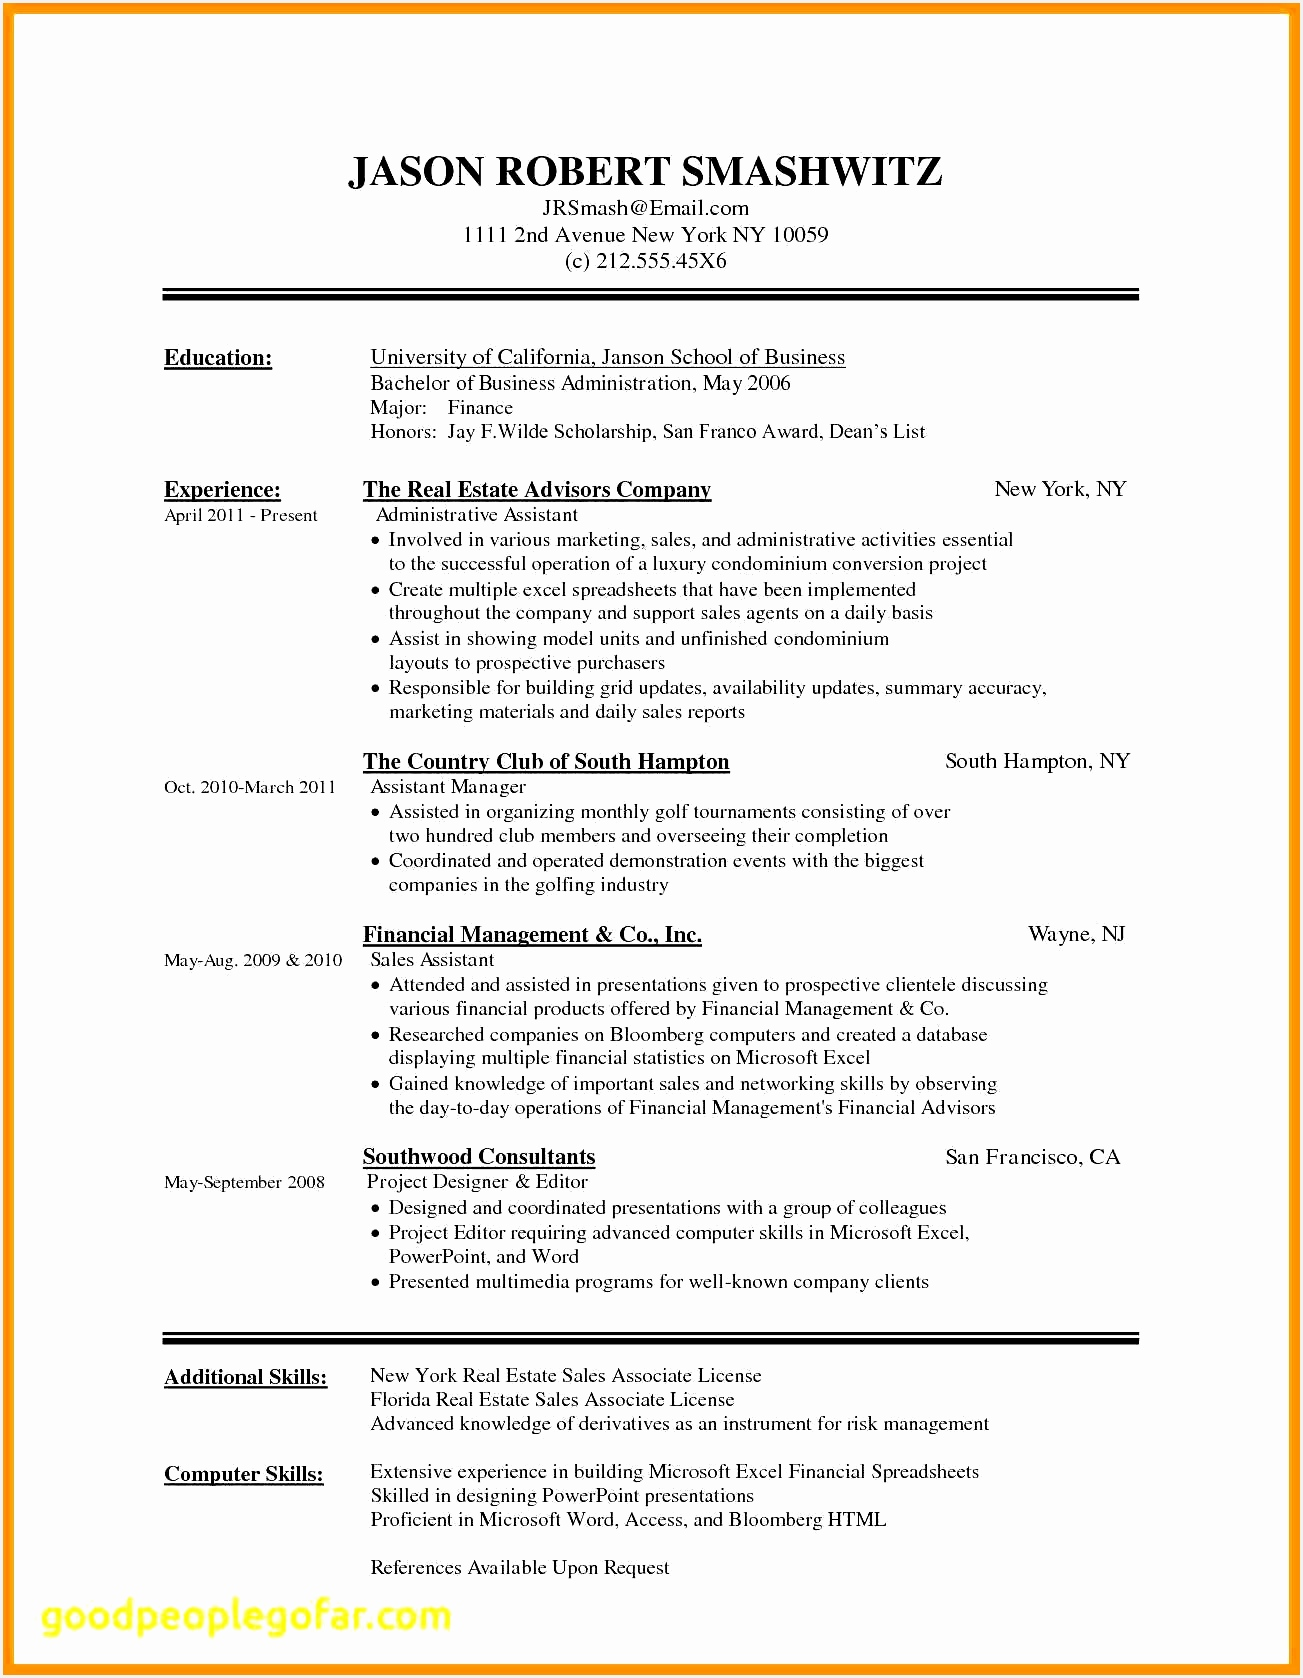 Great Resume Templates for Microsoft Word Inspiration Microsoft Word Resume Template Aurelianmg16781303